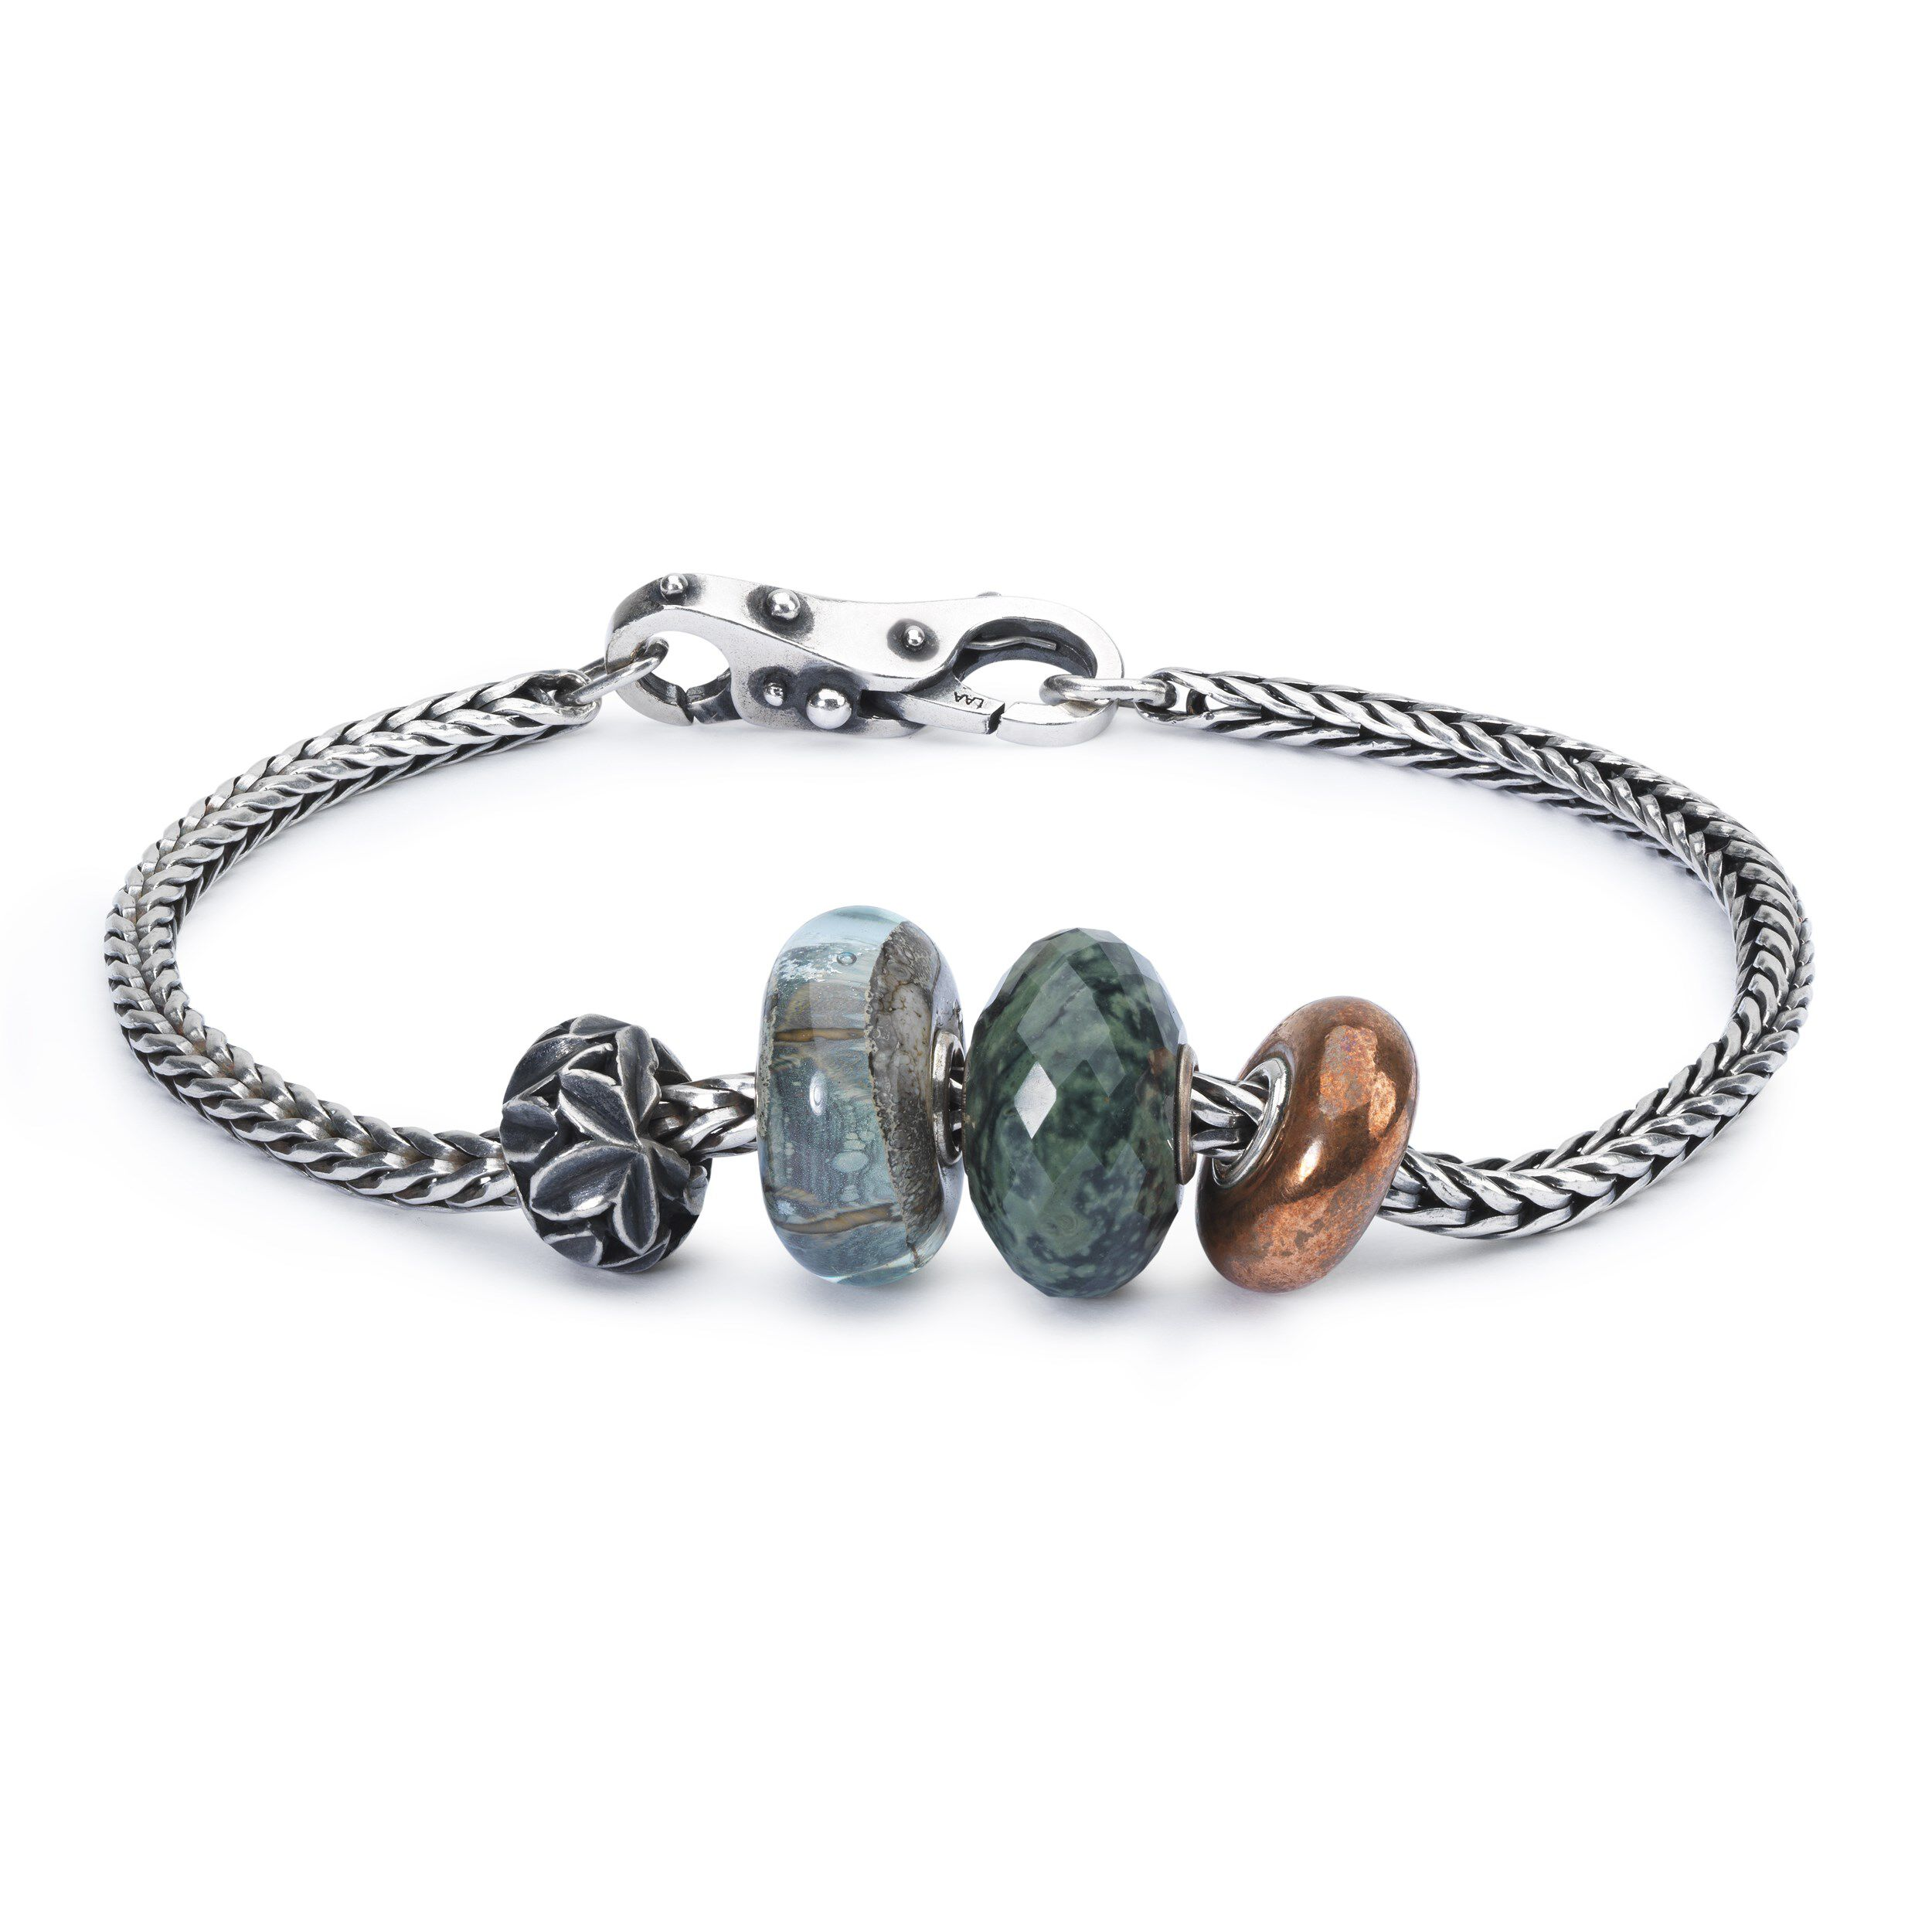 Silver Turquoise Bracelet of 22cm